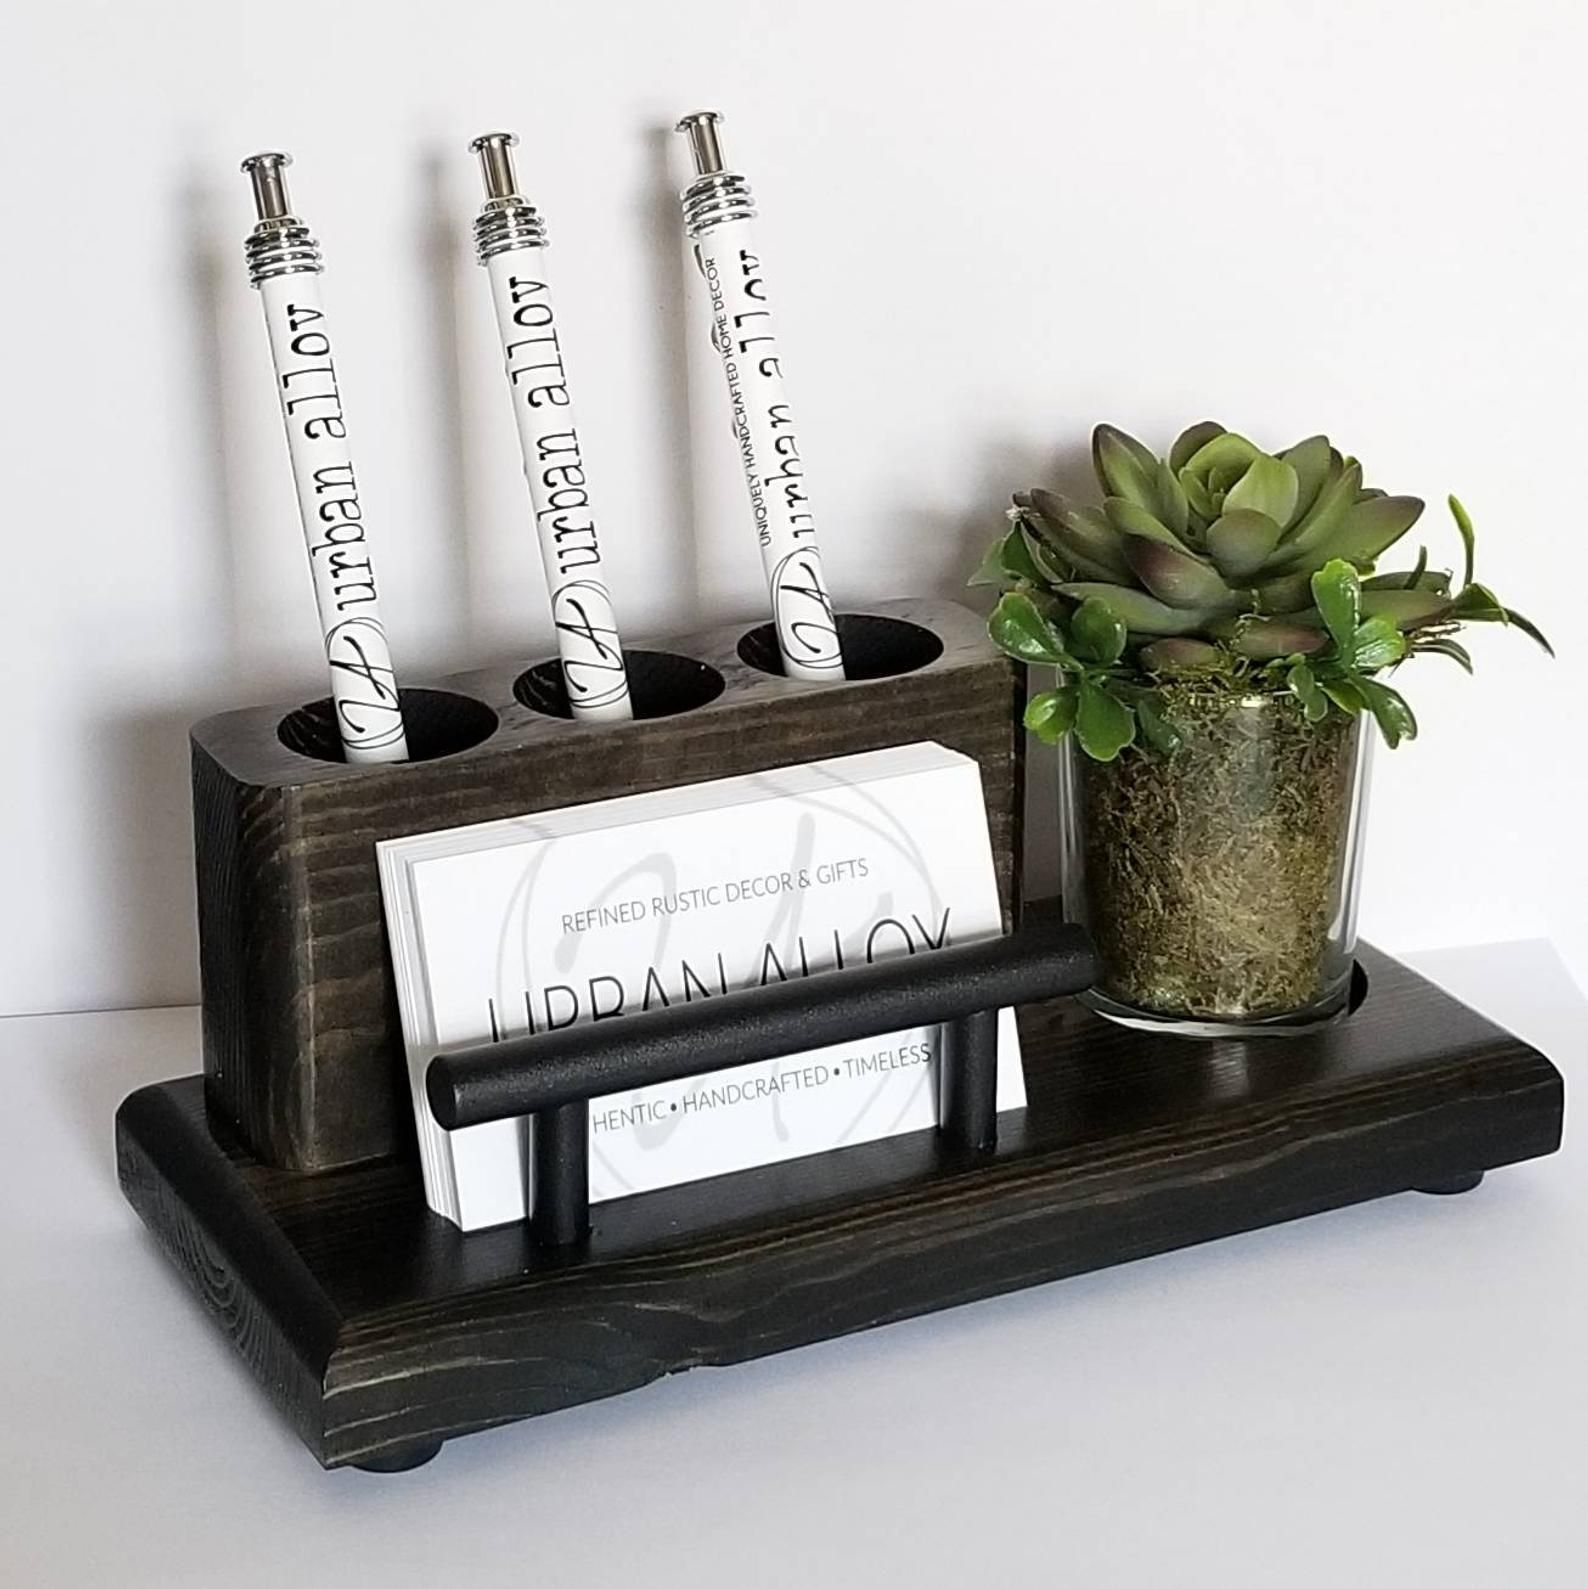 Wood Pen and Business Card Holder With Succulent Planter